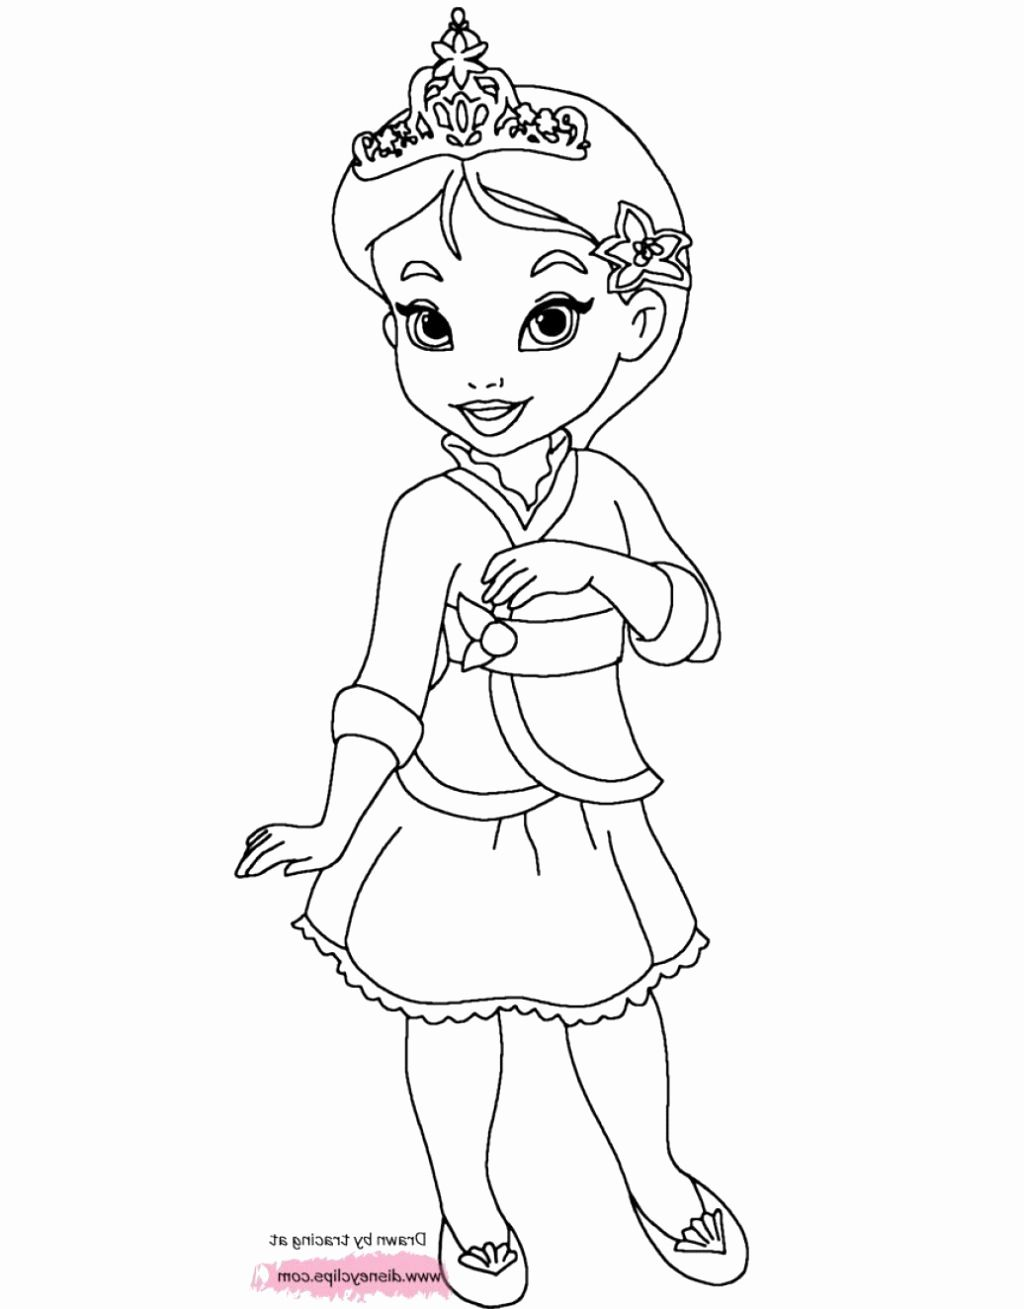 Baby Elsa And Anna Colouring Pages New Butterfly Princess Coloring Pages Awesome Co Disney Princess Coloring Pages Disney Coloring Pages Disney Princess Colors